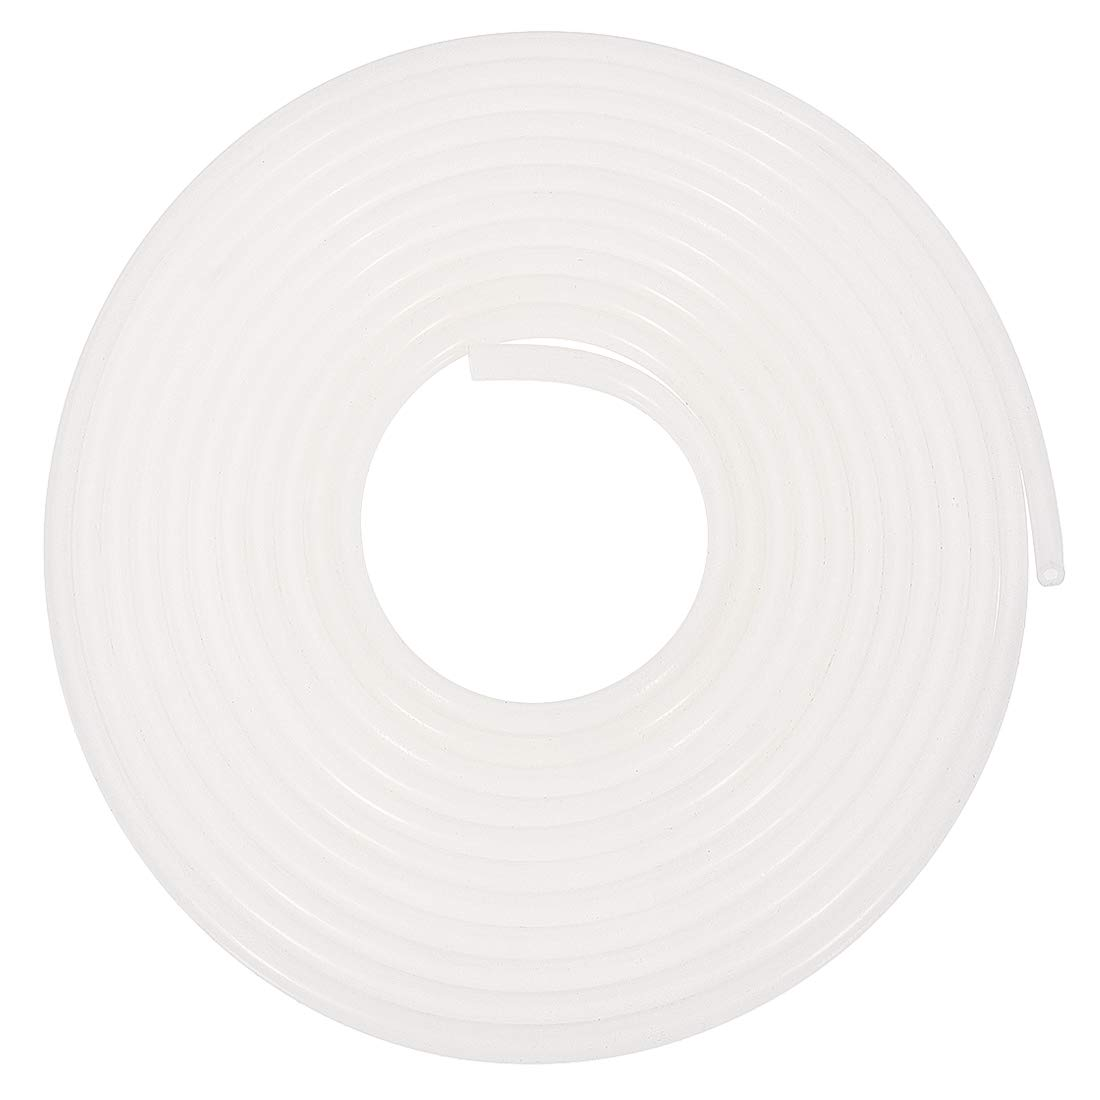 Max 45% OFF uxcell Silicone Tubing 1 8 Inch ID Feet OD 4 Discount is also underway X Hig 16.4